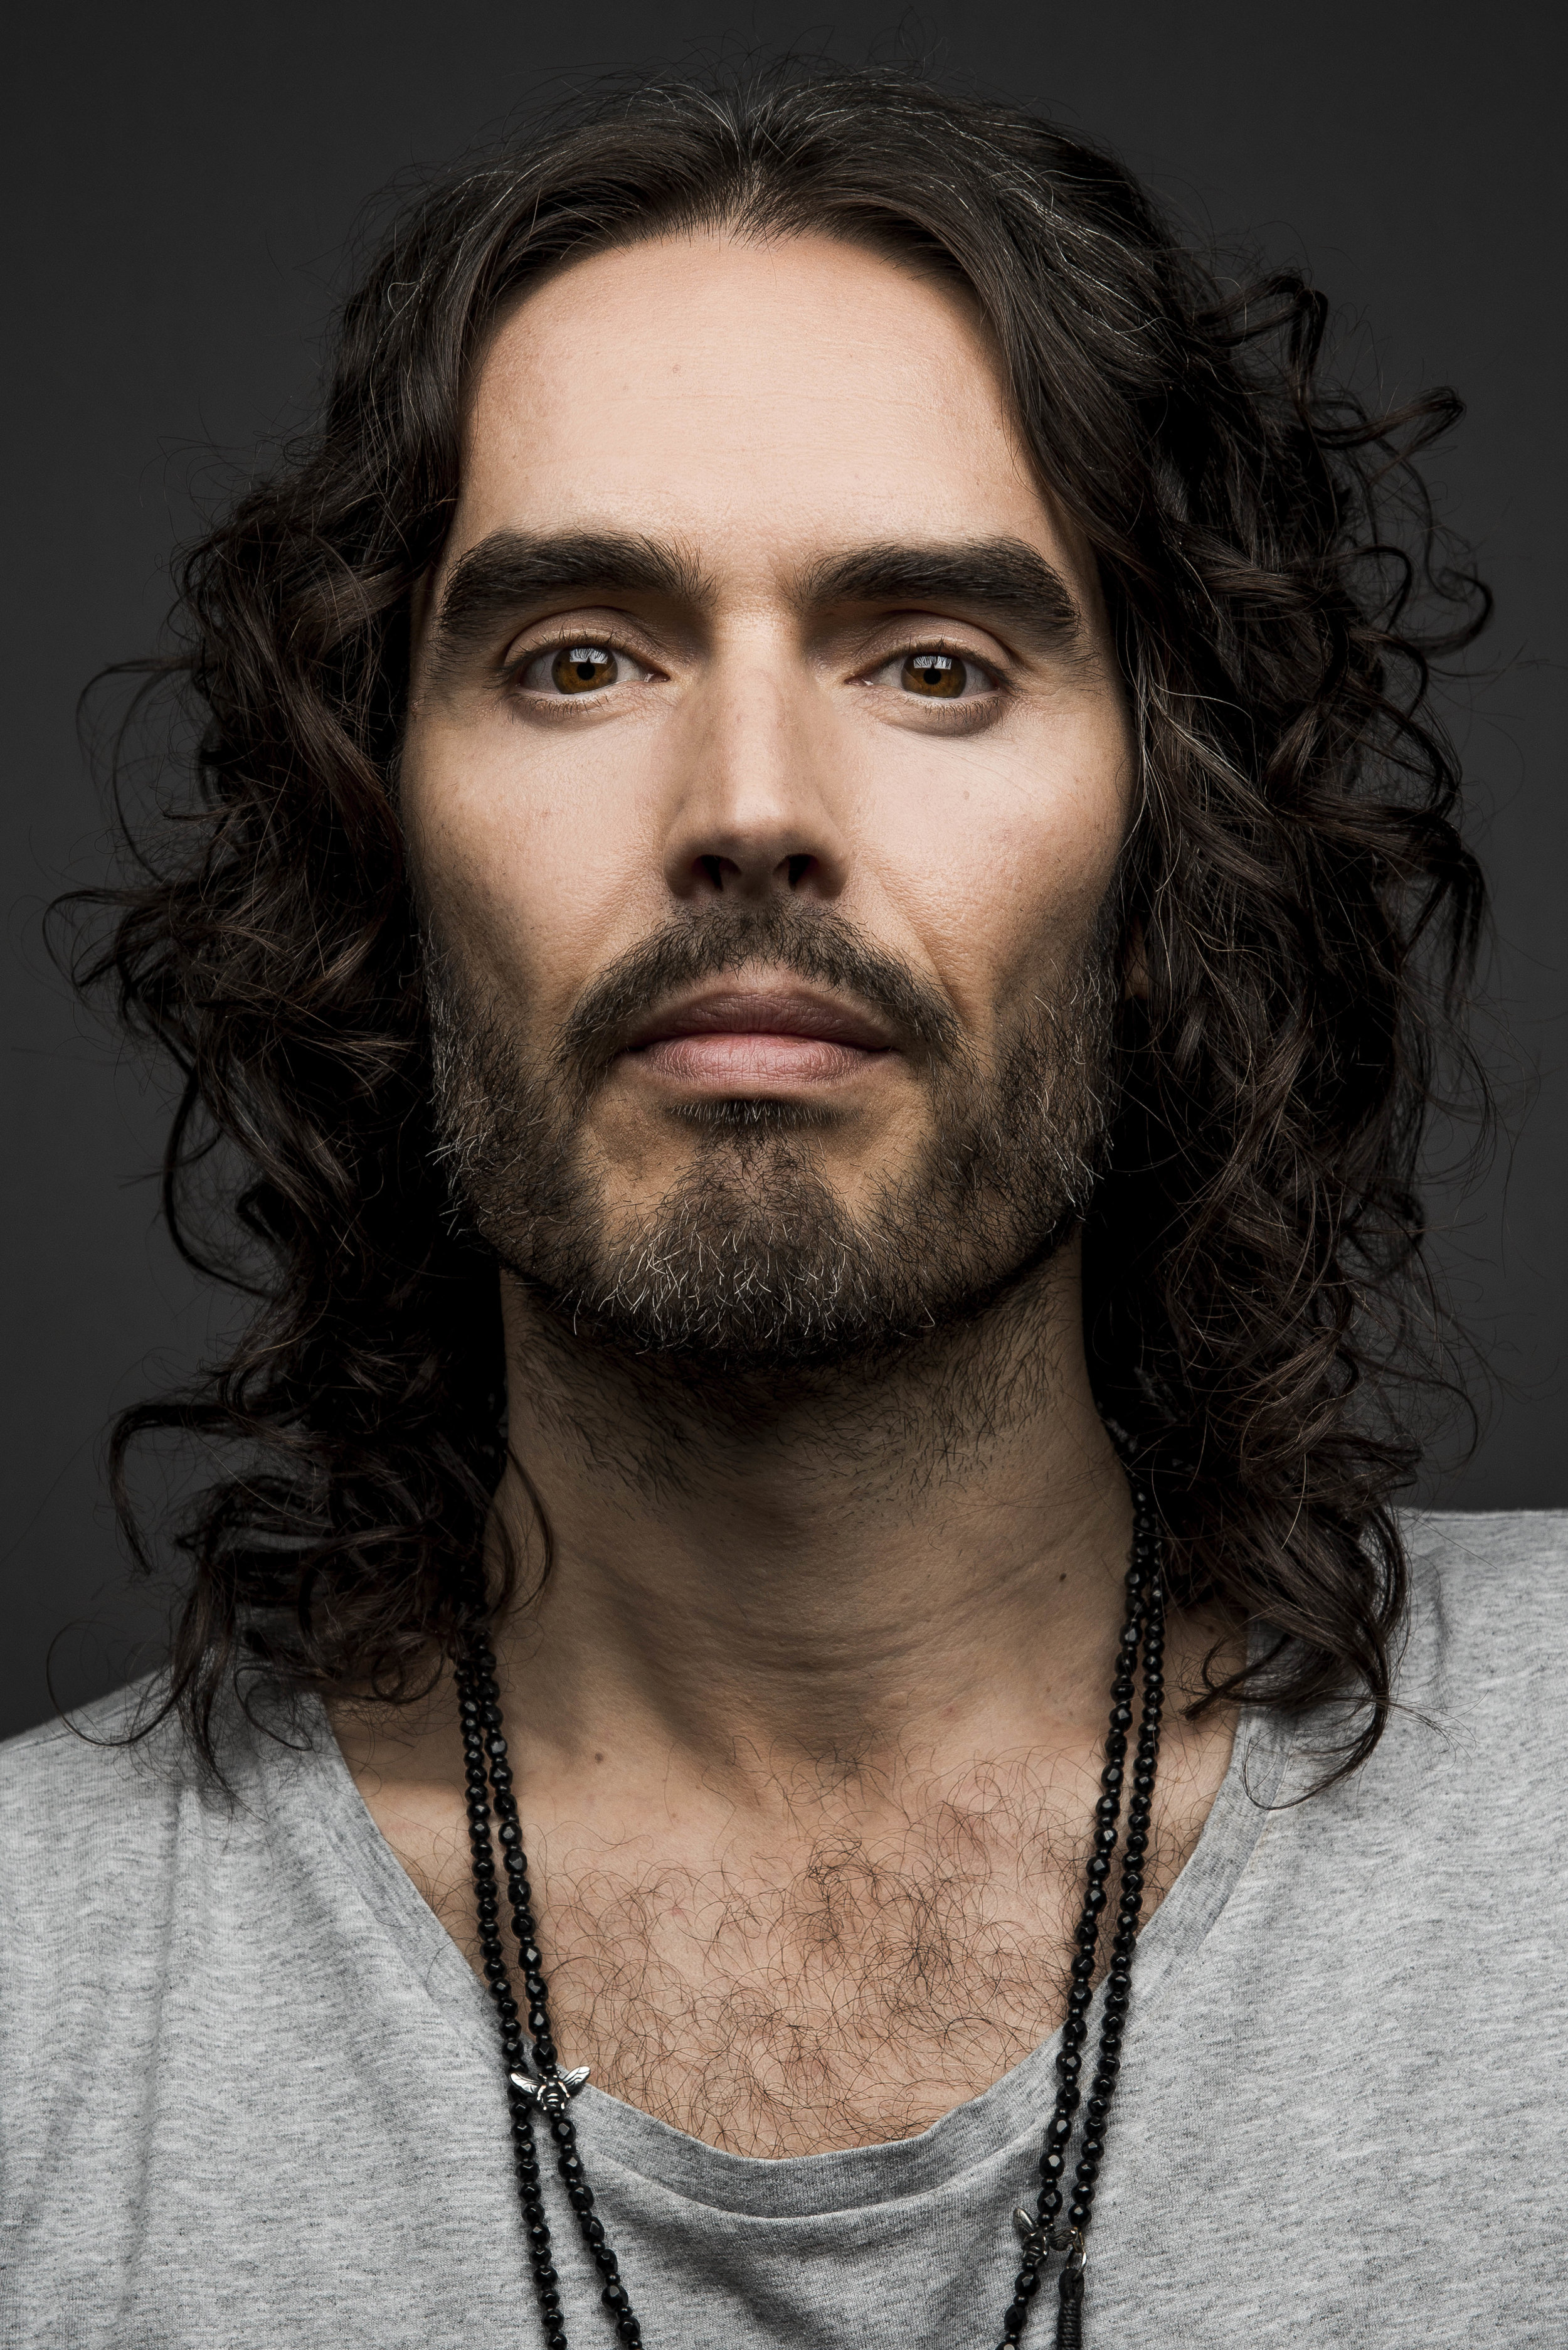 Russell Brand's Recovery Movement